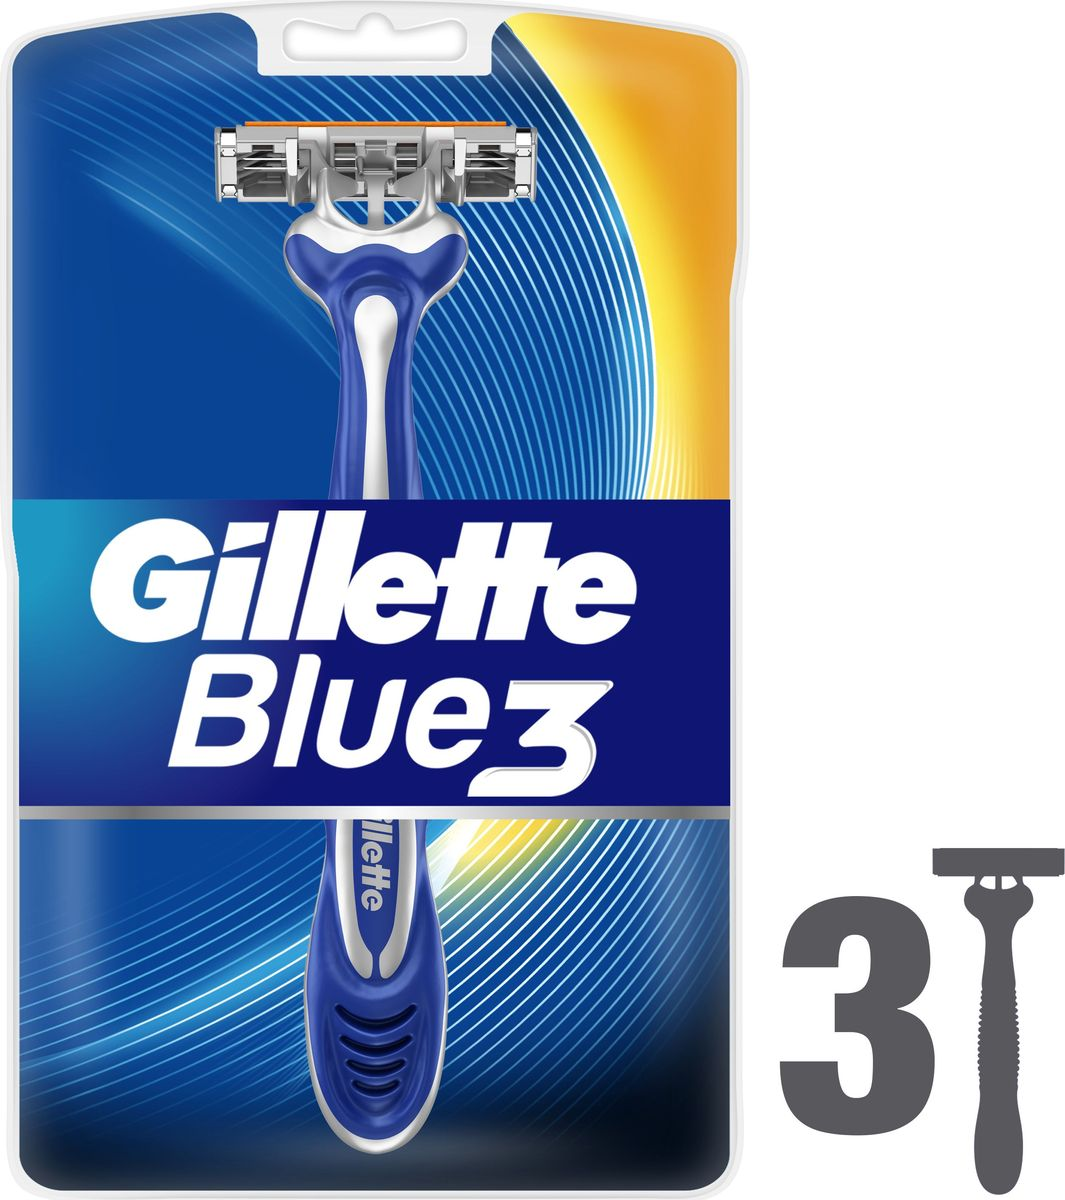 Gillette Blue 3 Одноразовые мужские бритвы, 3 шт ds3231 high precision real time clock module blue 3 3 5 5v